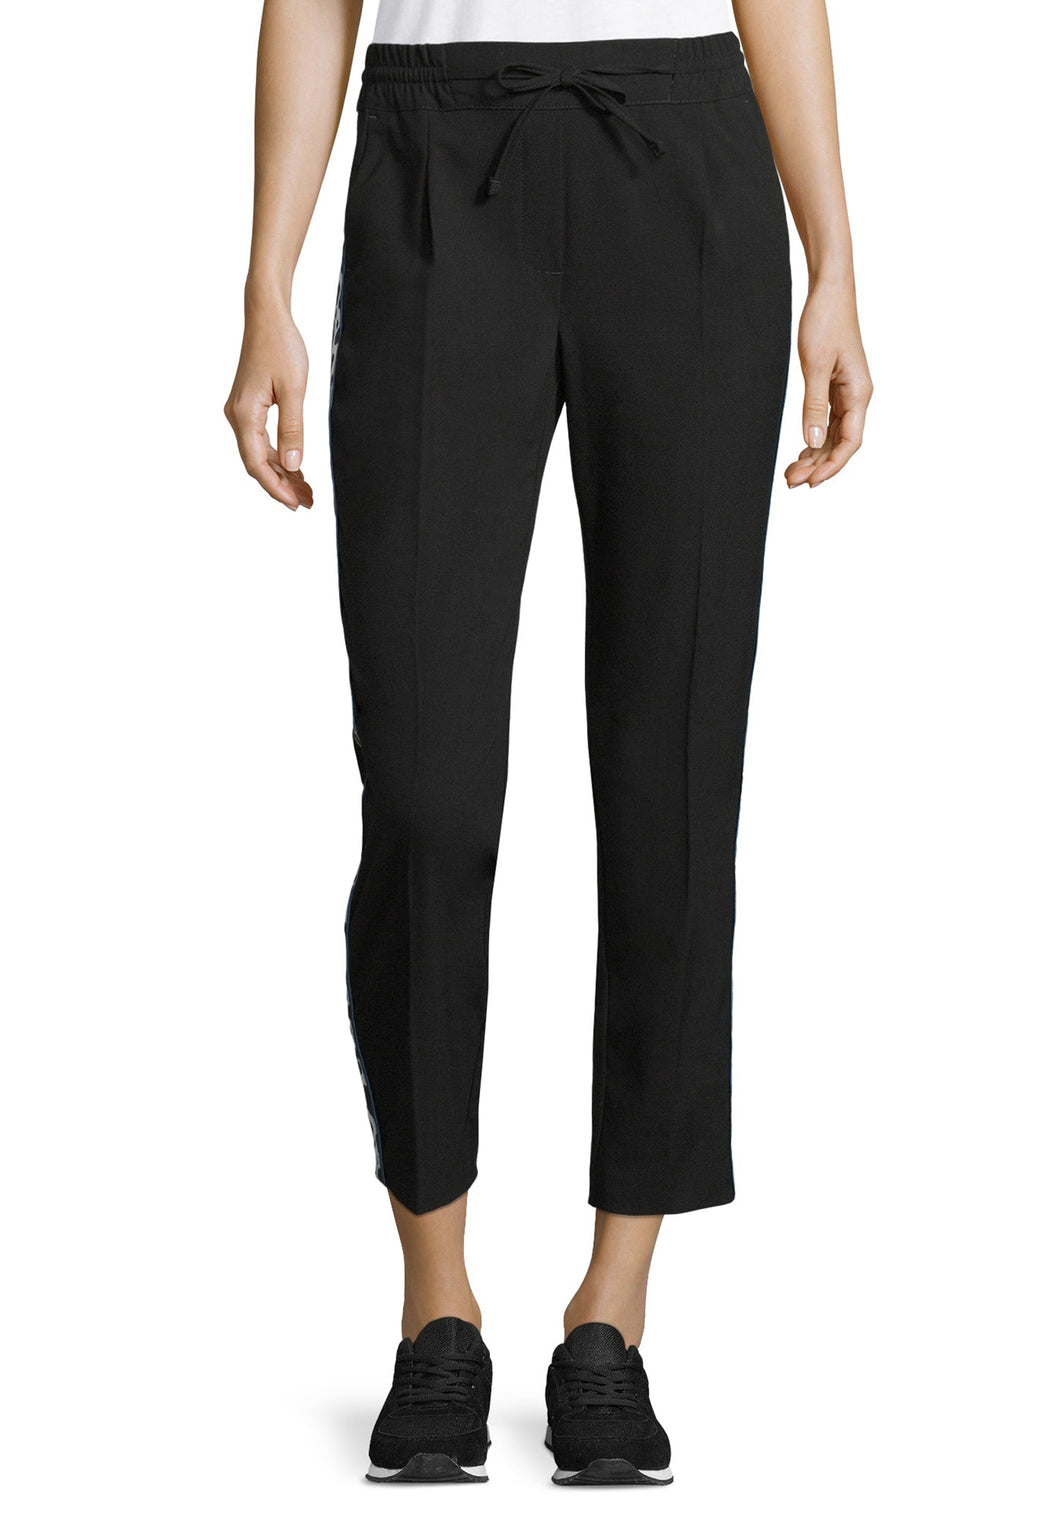 Betty Barclay Trousers 6077/1077 SS20 Black